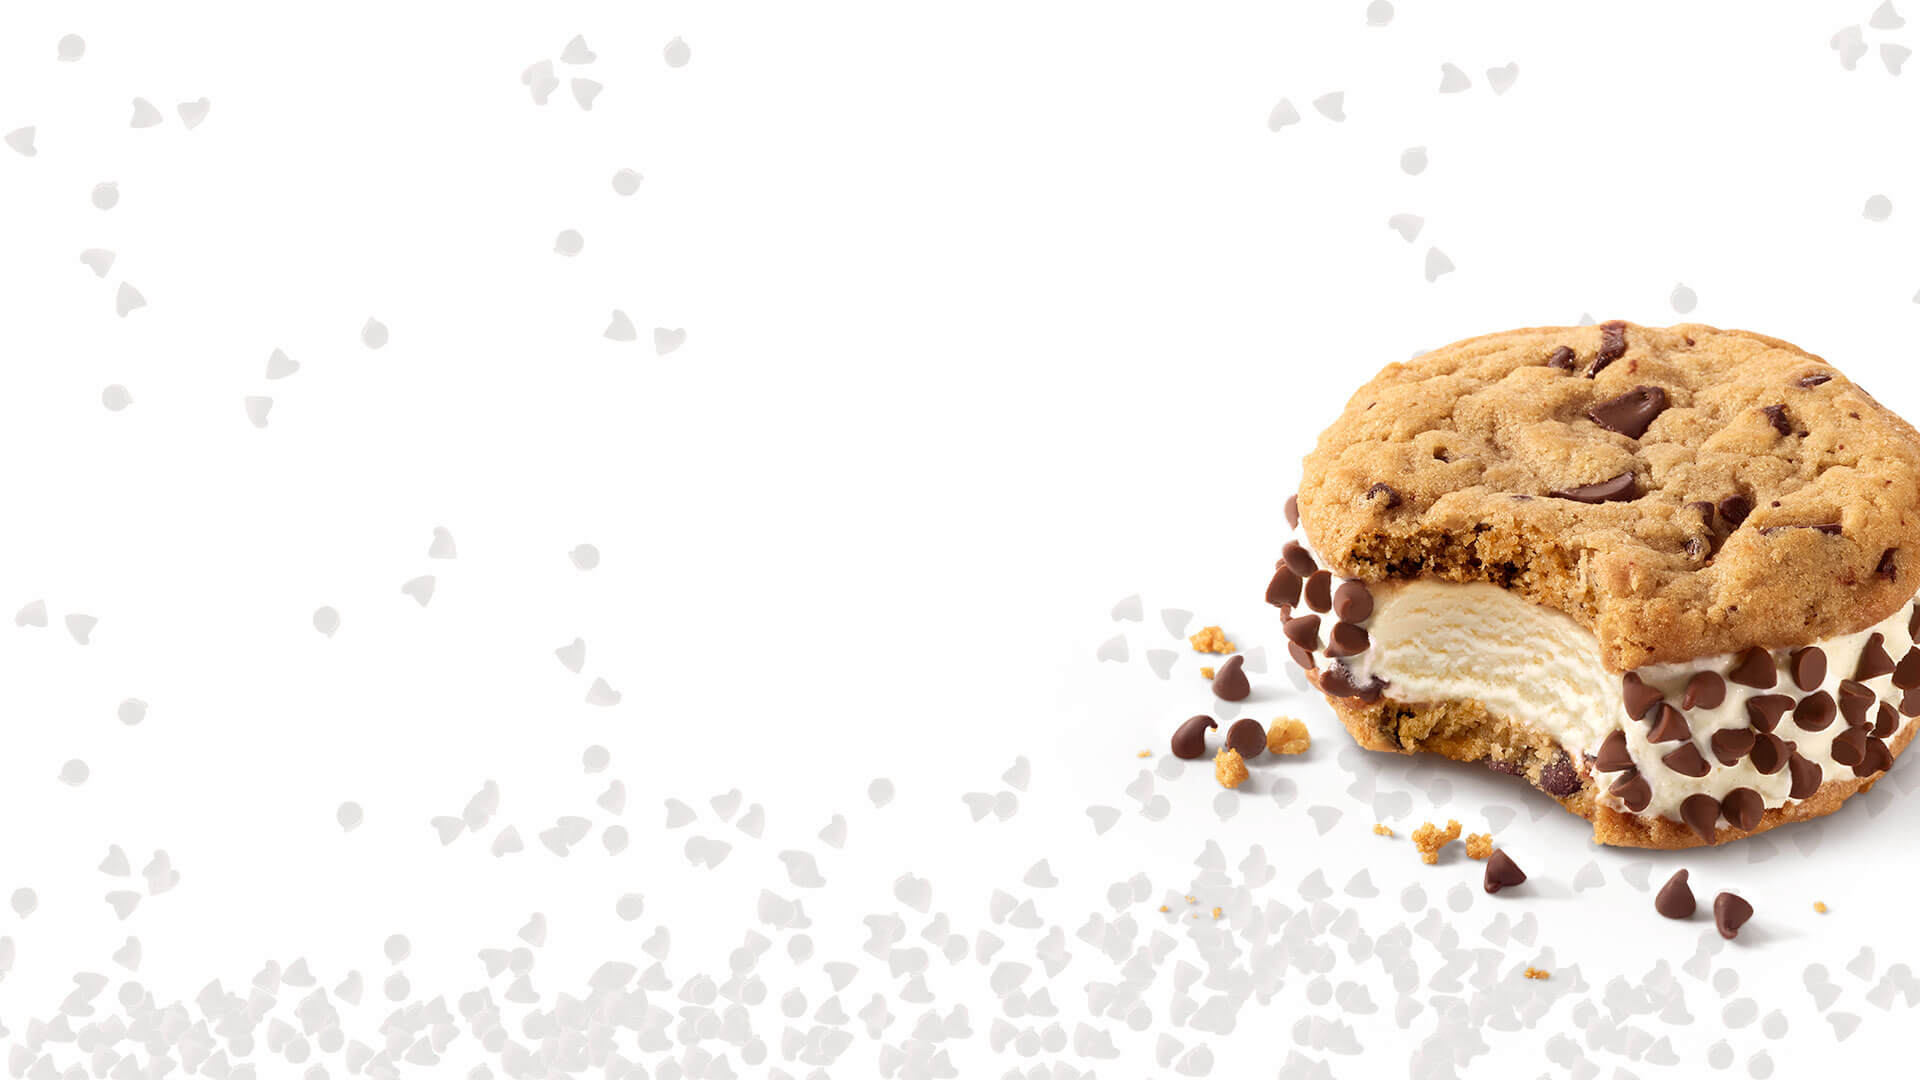 Chipwich Confirmation Page